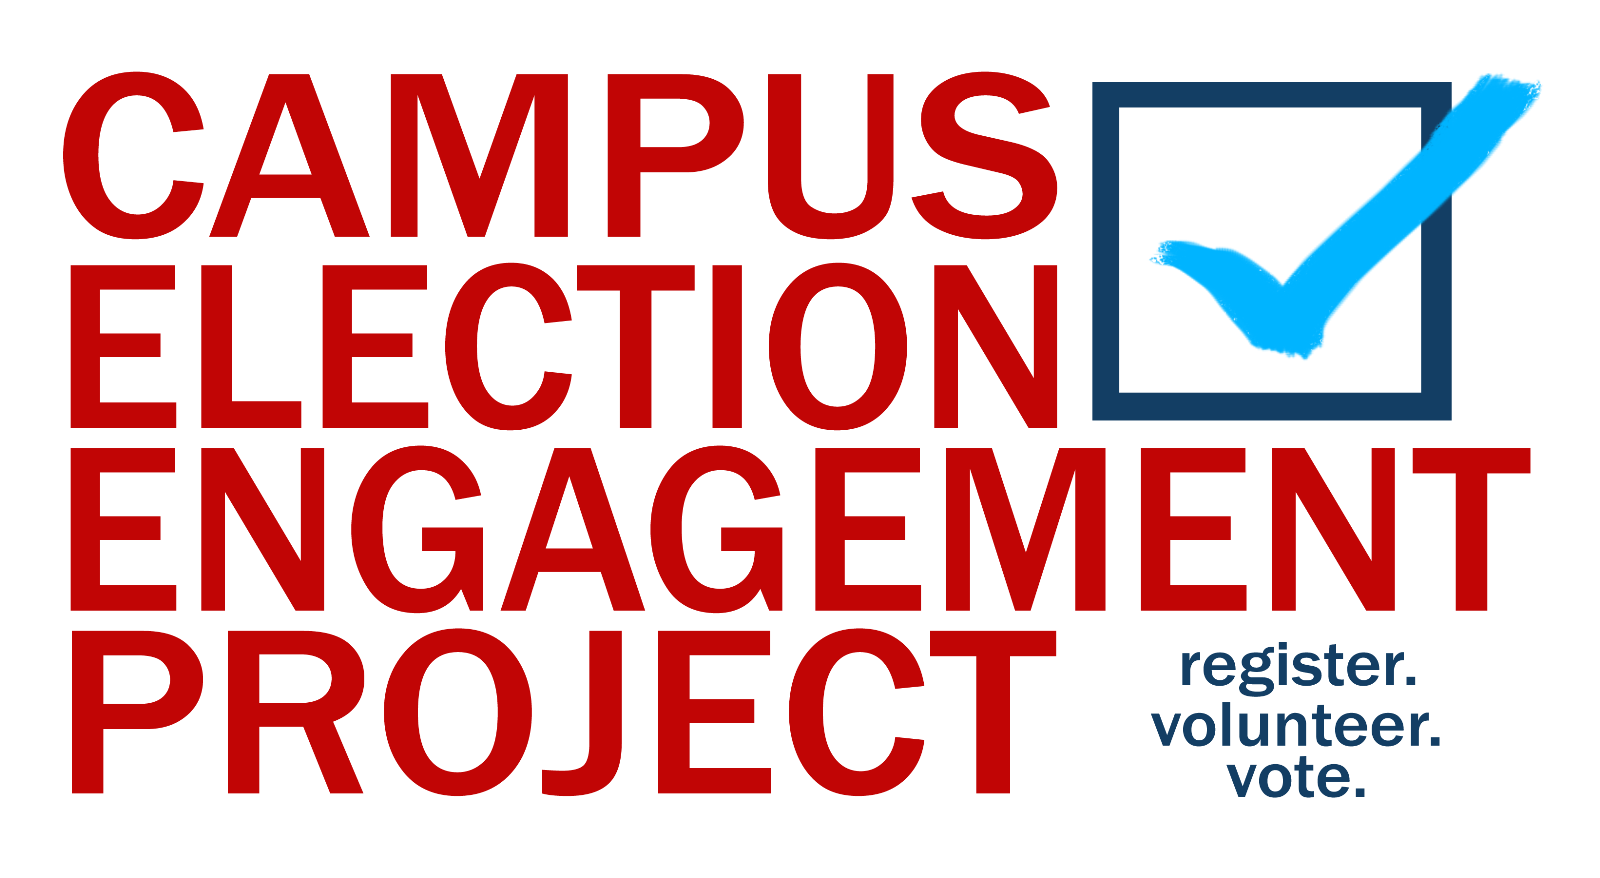 Image result for campus election engagement project